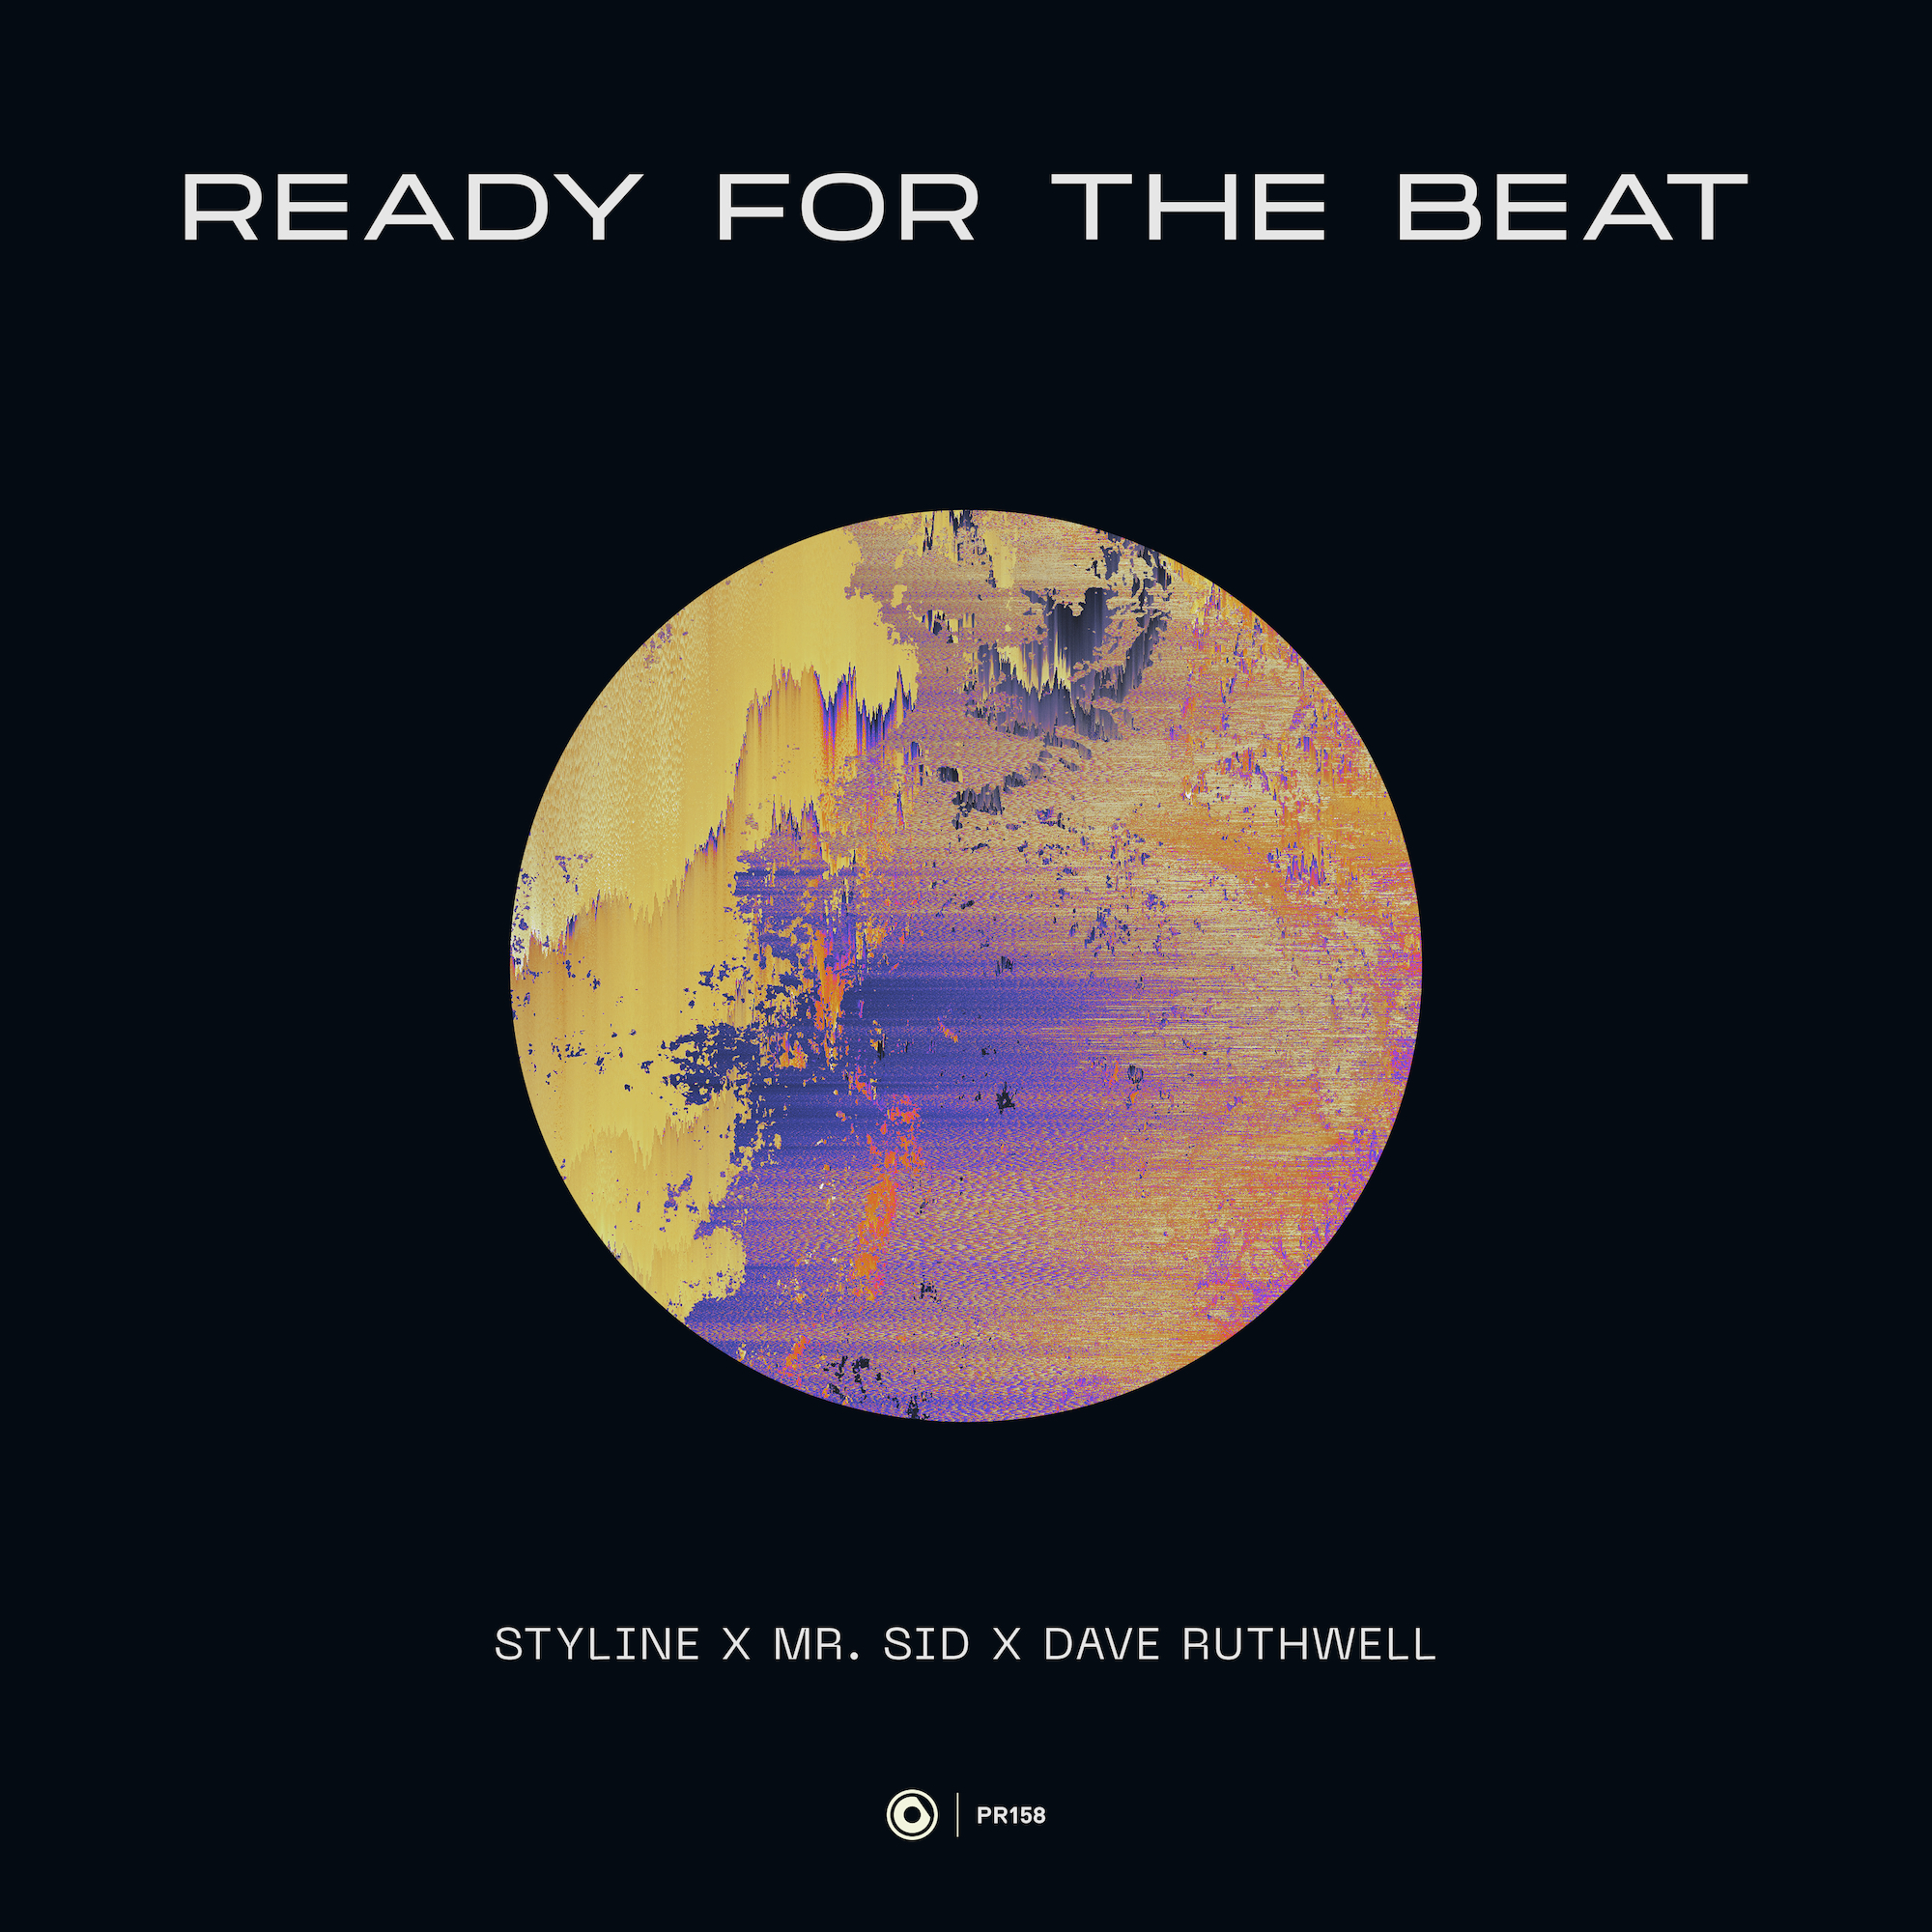 Styline X Mr. Sid X Dave Ruthwell - READY FOR THE BEAT.jpg